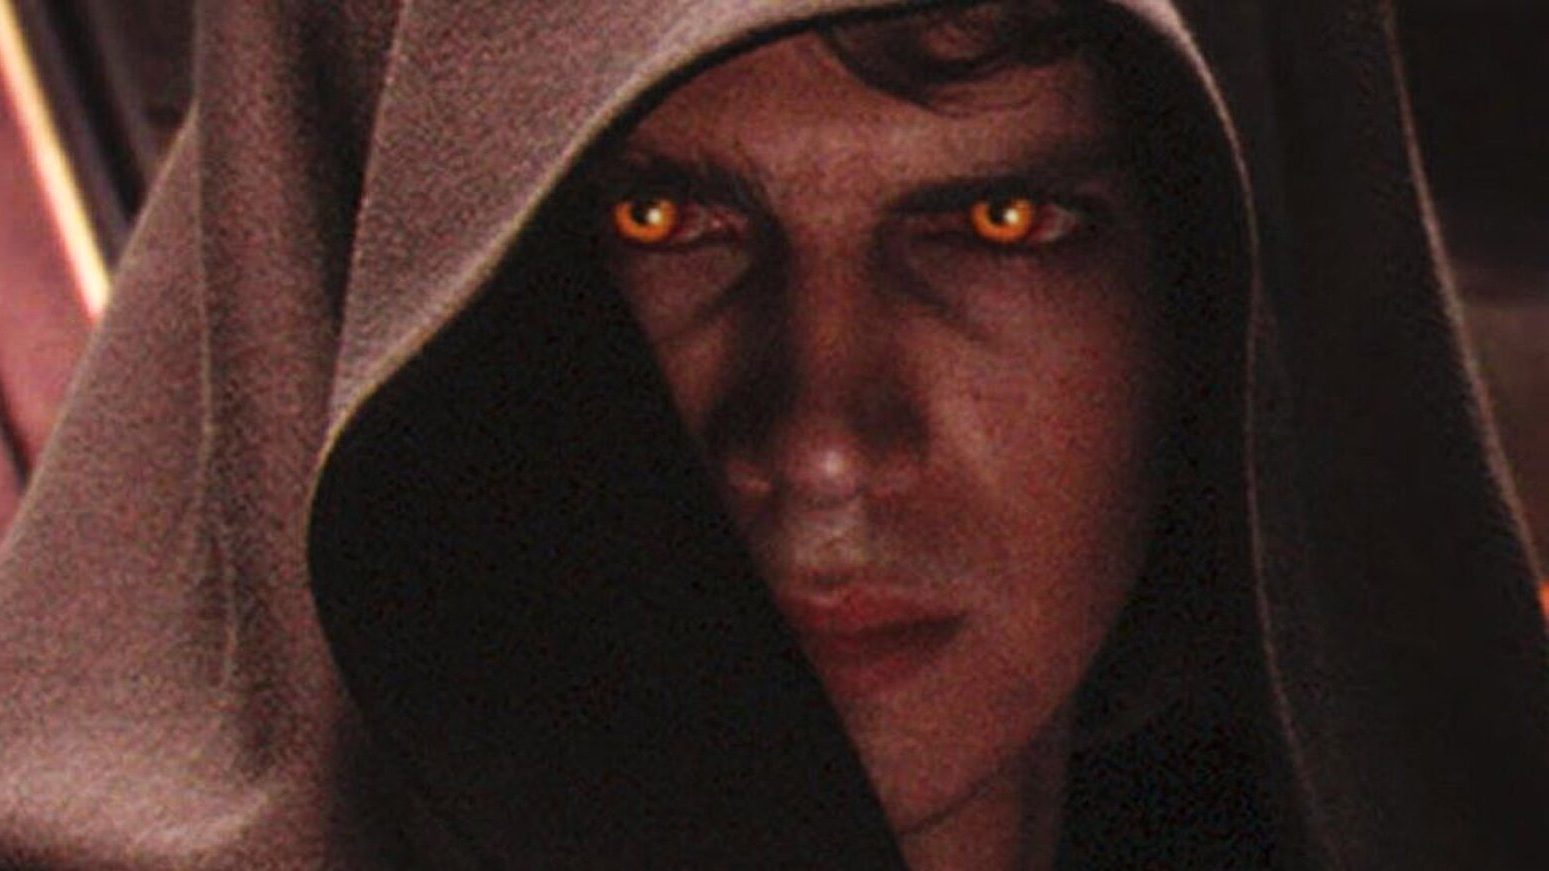 Hayden Christensen's Return As Darth Vader Revealed, And It's Disappointing